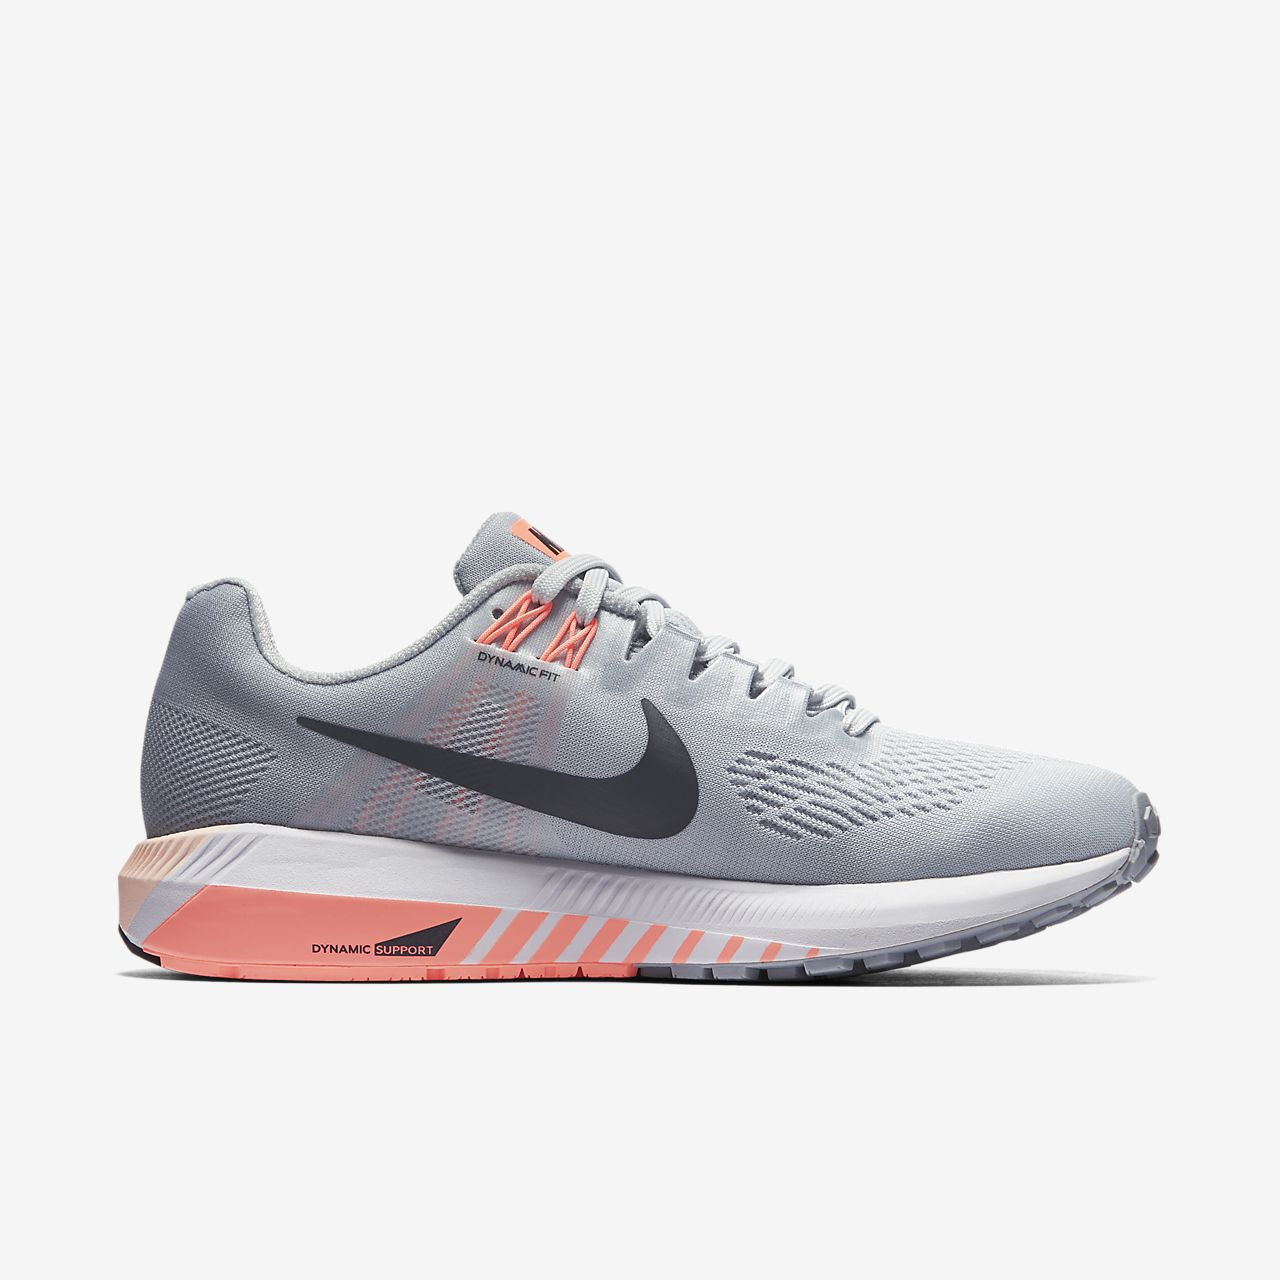 Nike Wmns Air Zoom Structure 21 Wolf Grey Women Running Shoes Sneaker 904701-008